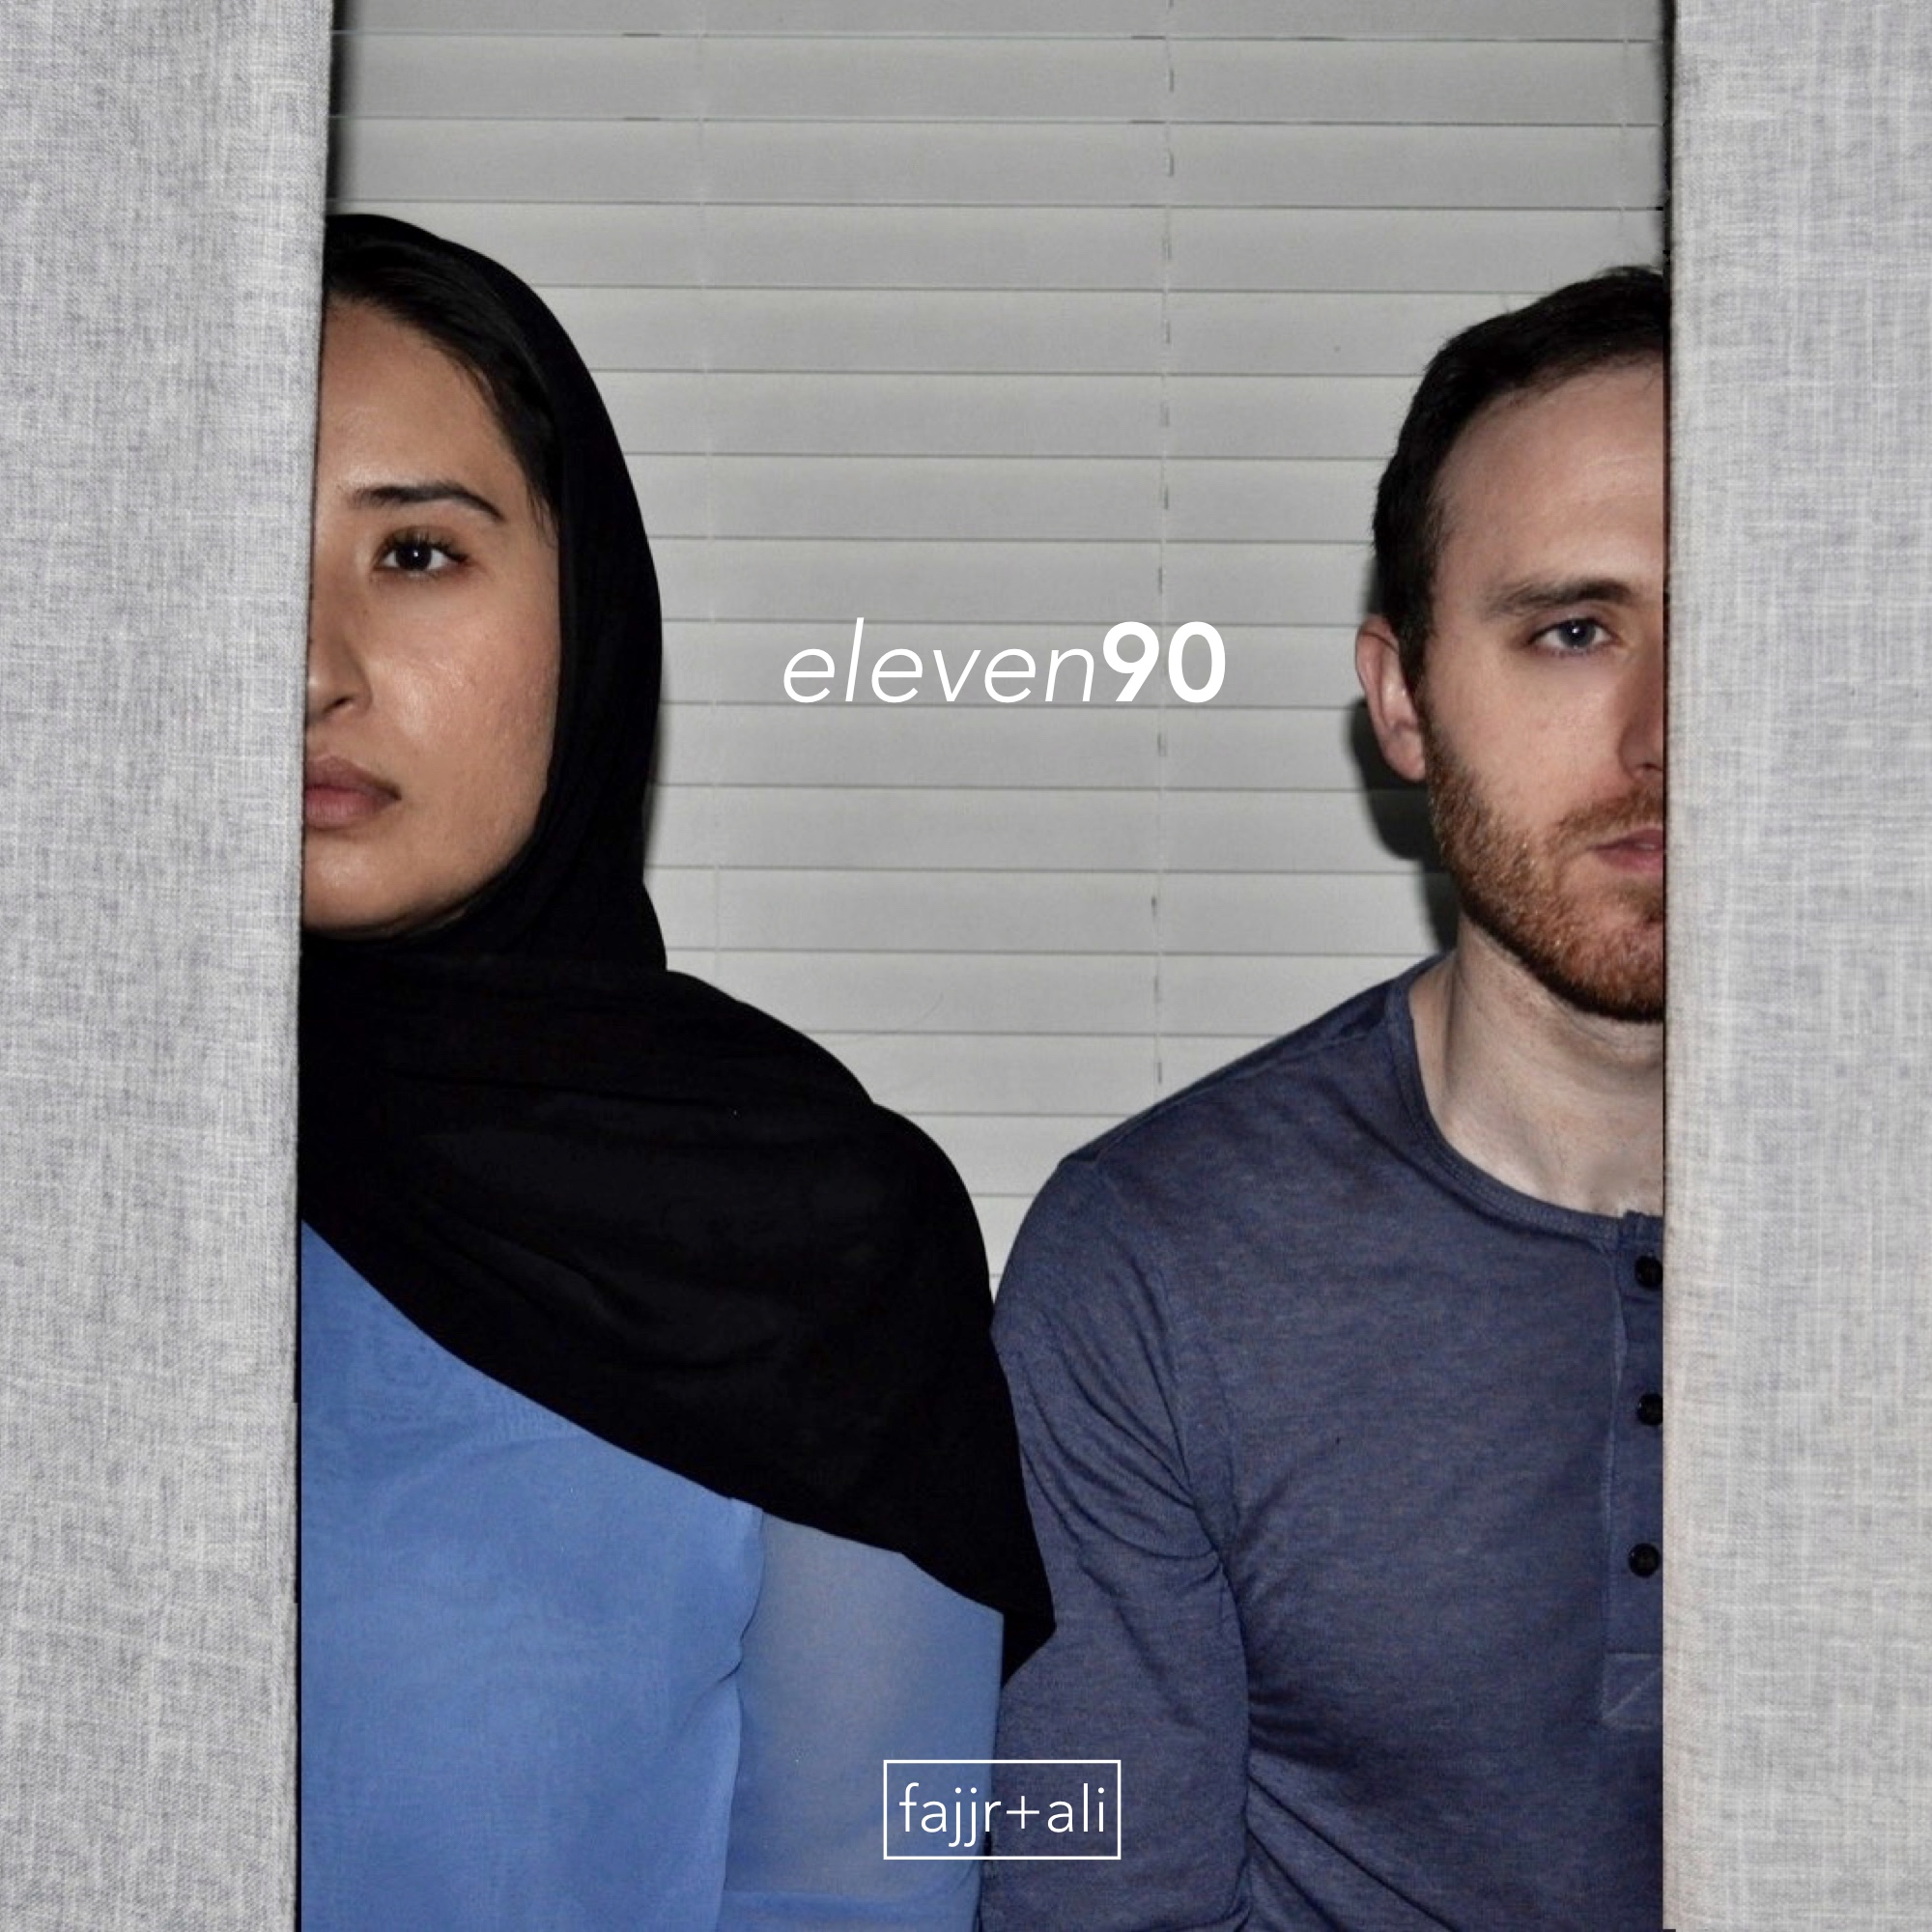 Buy the debut EP eleven90 -